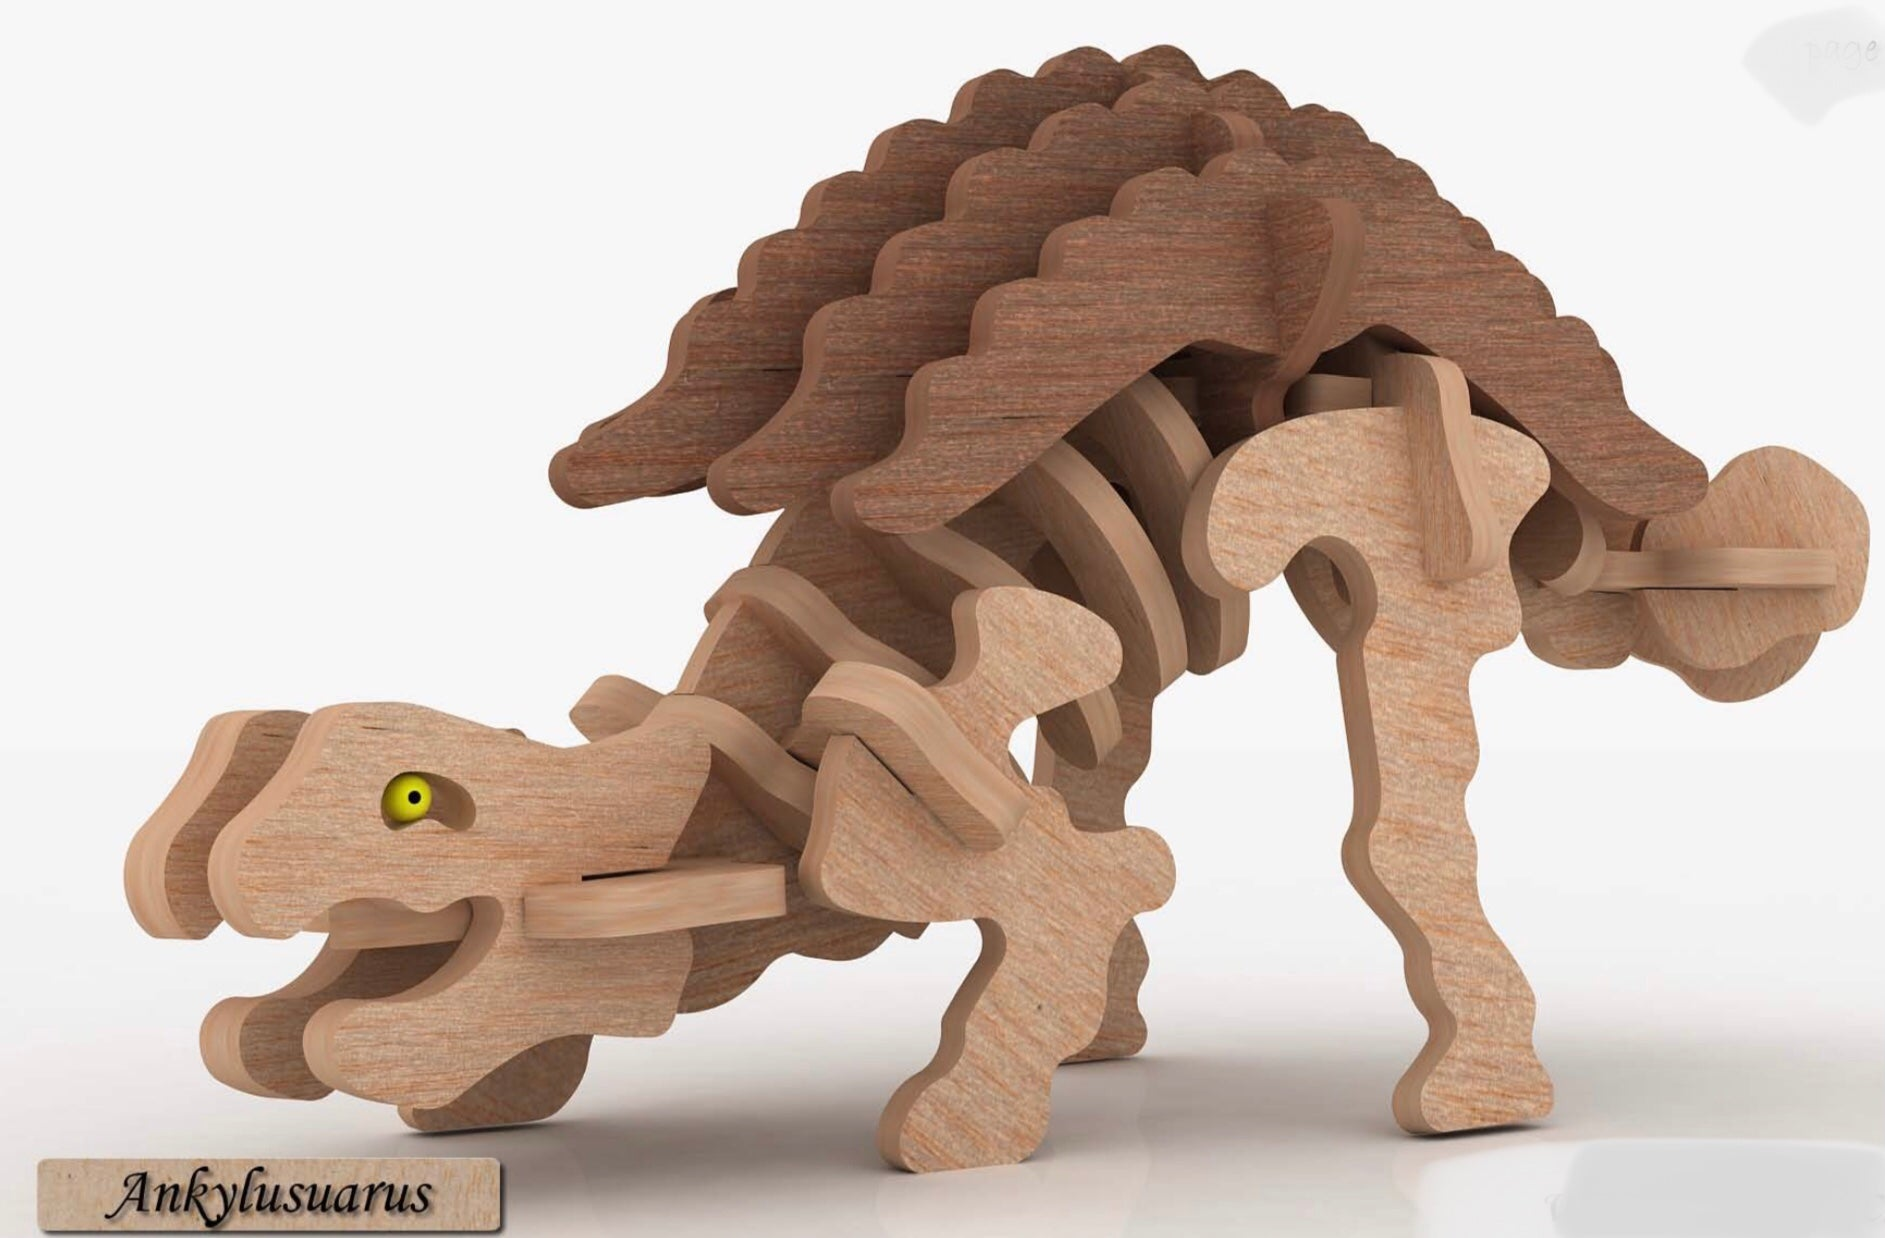 3D Puzzle- Dinosaur Collection: Ankylusuarus